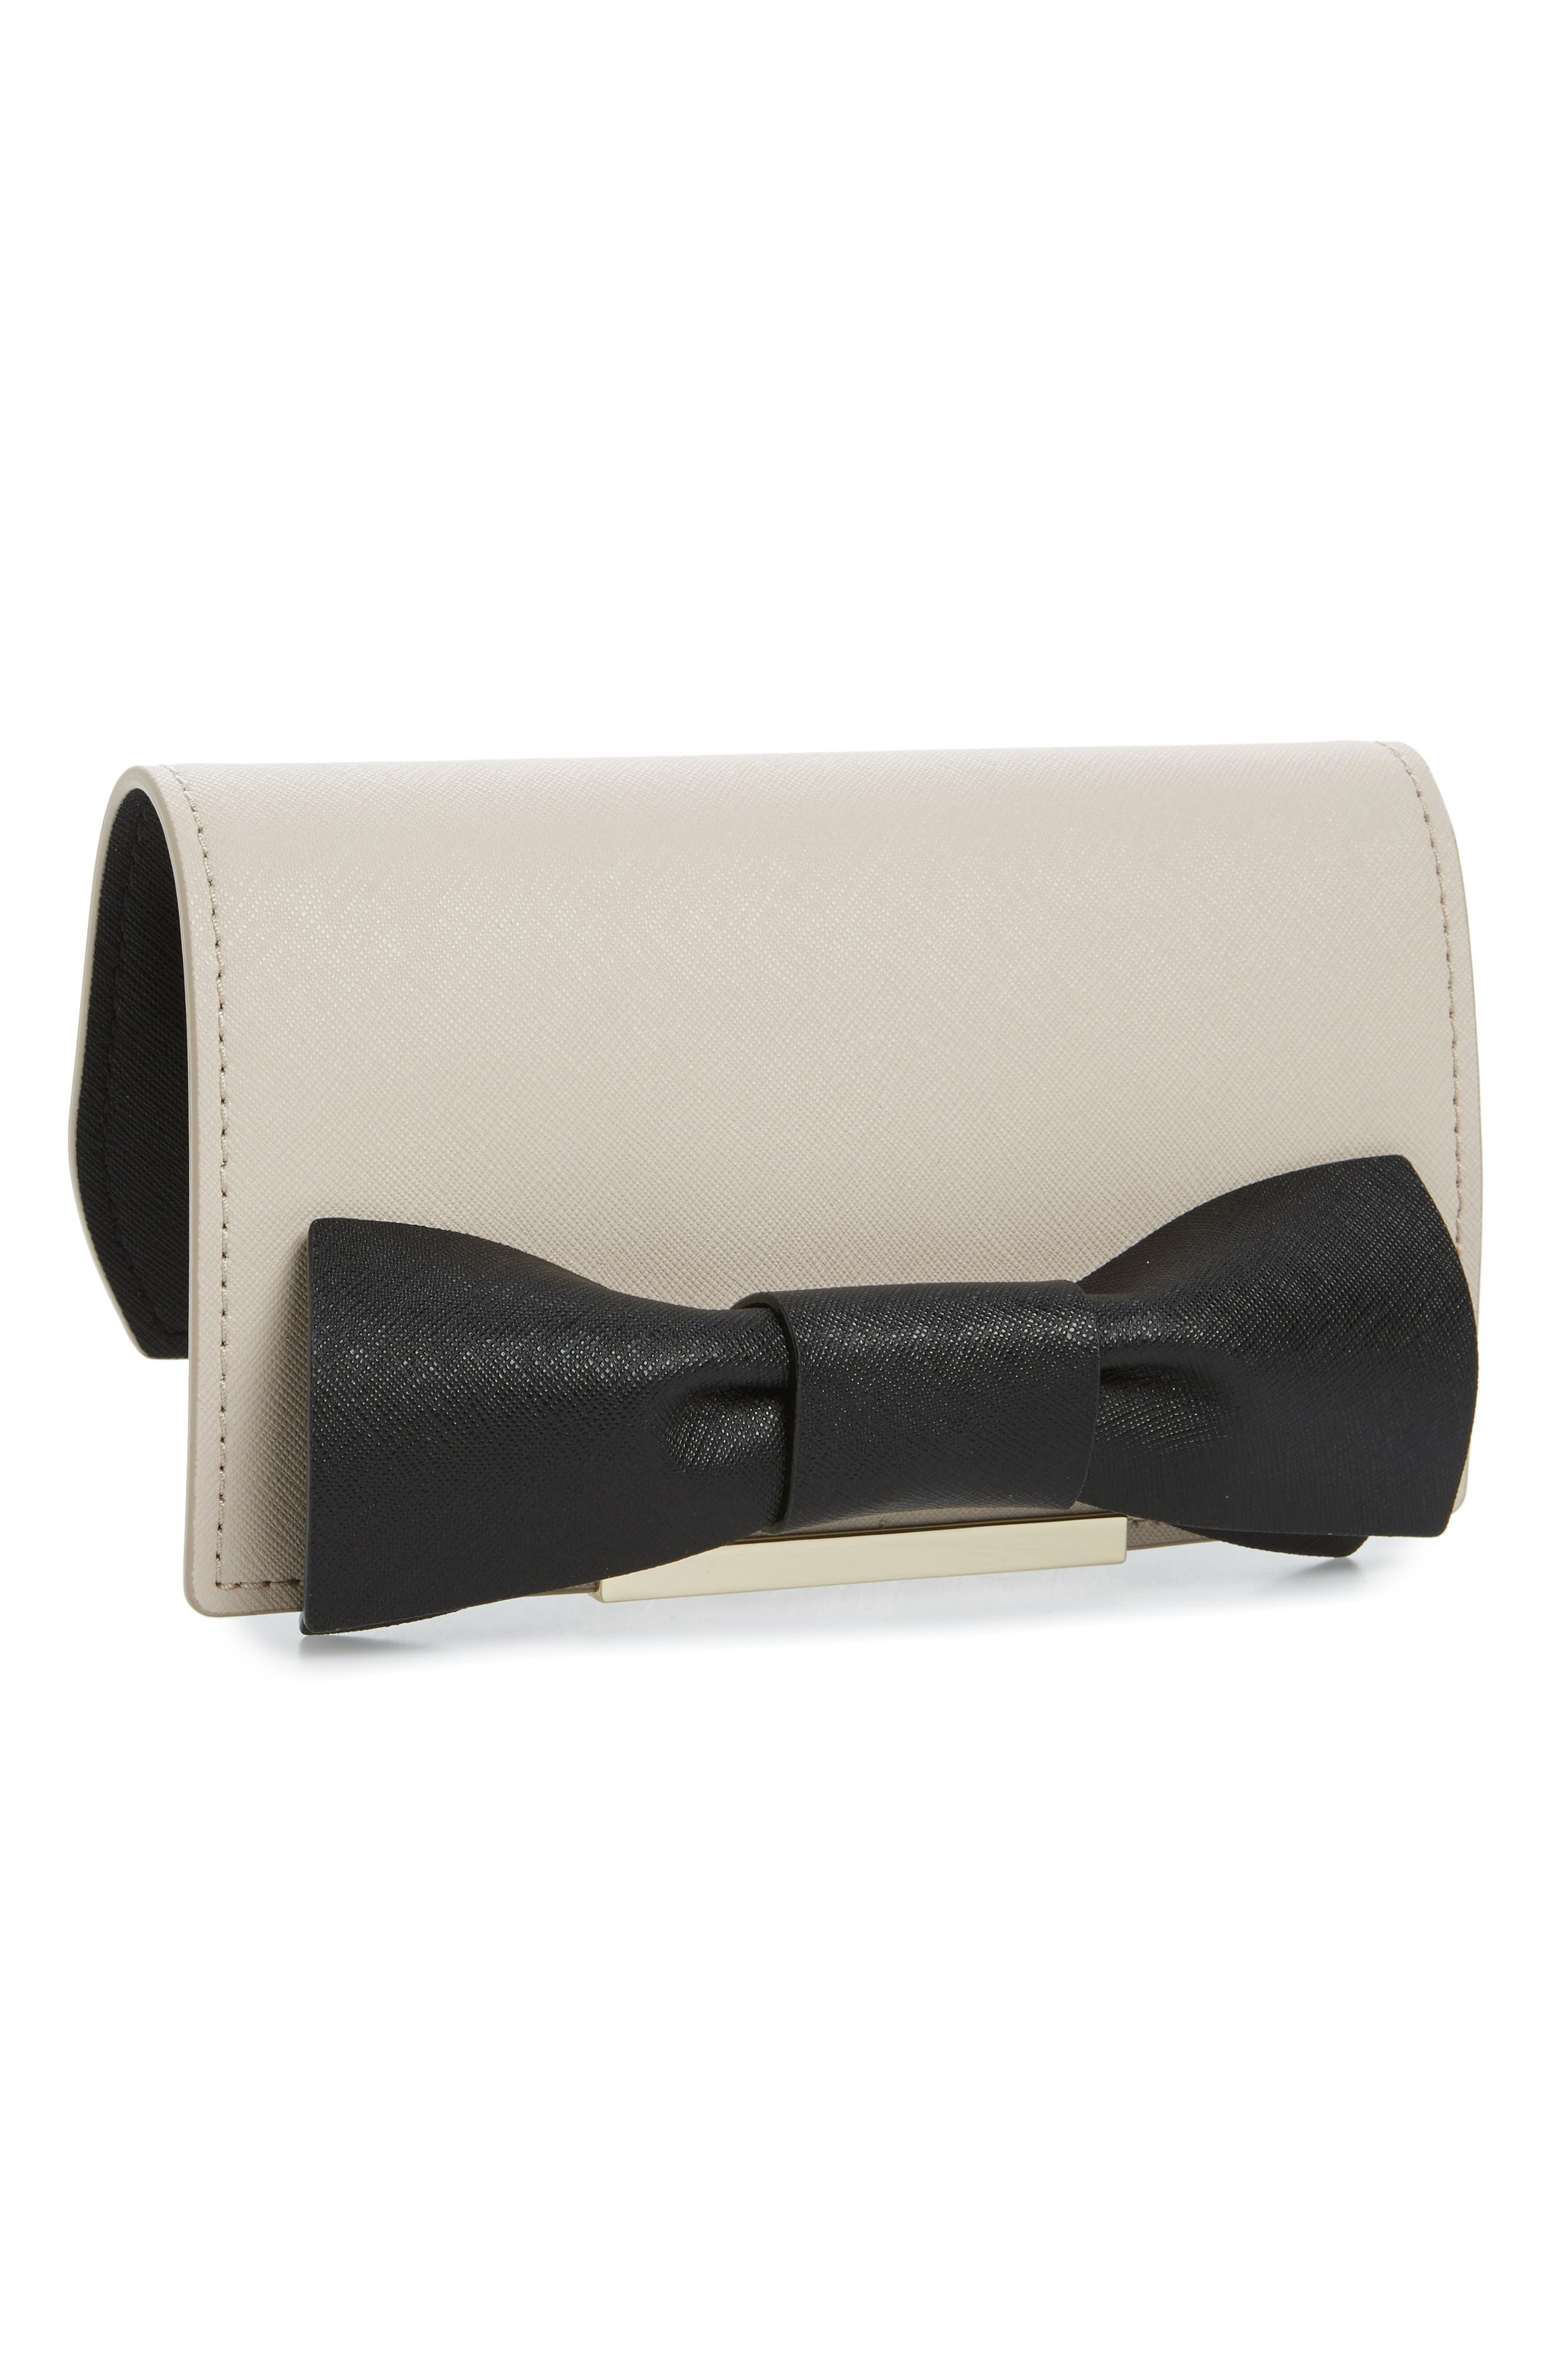 make it mine bow leather snap-on accent flap,                             Main thumbnail 1, color,                             900